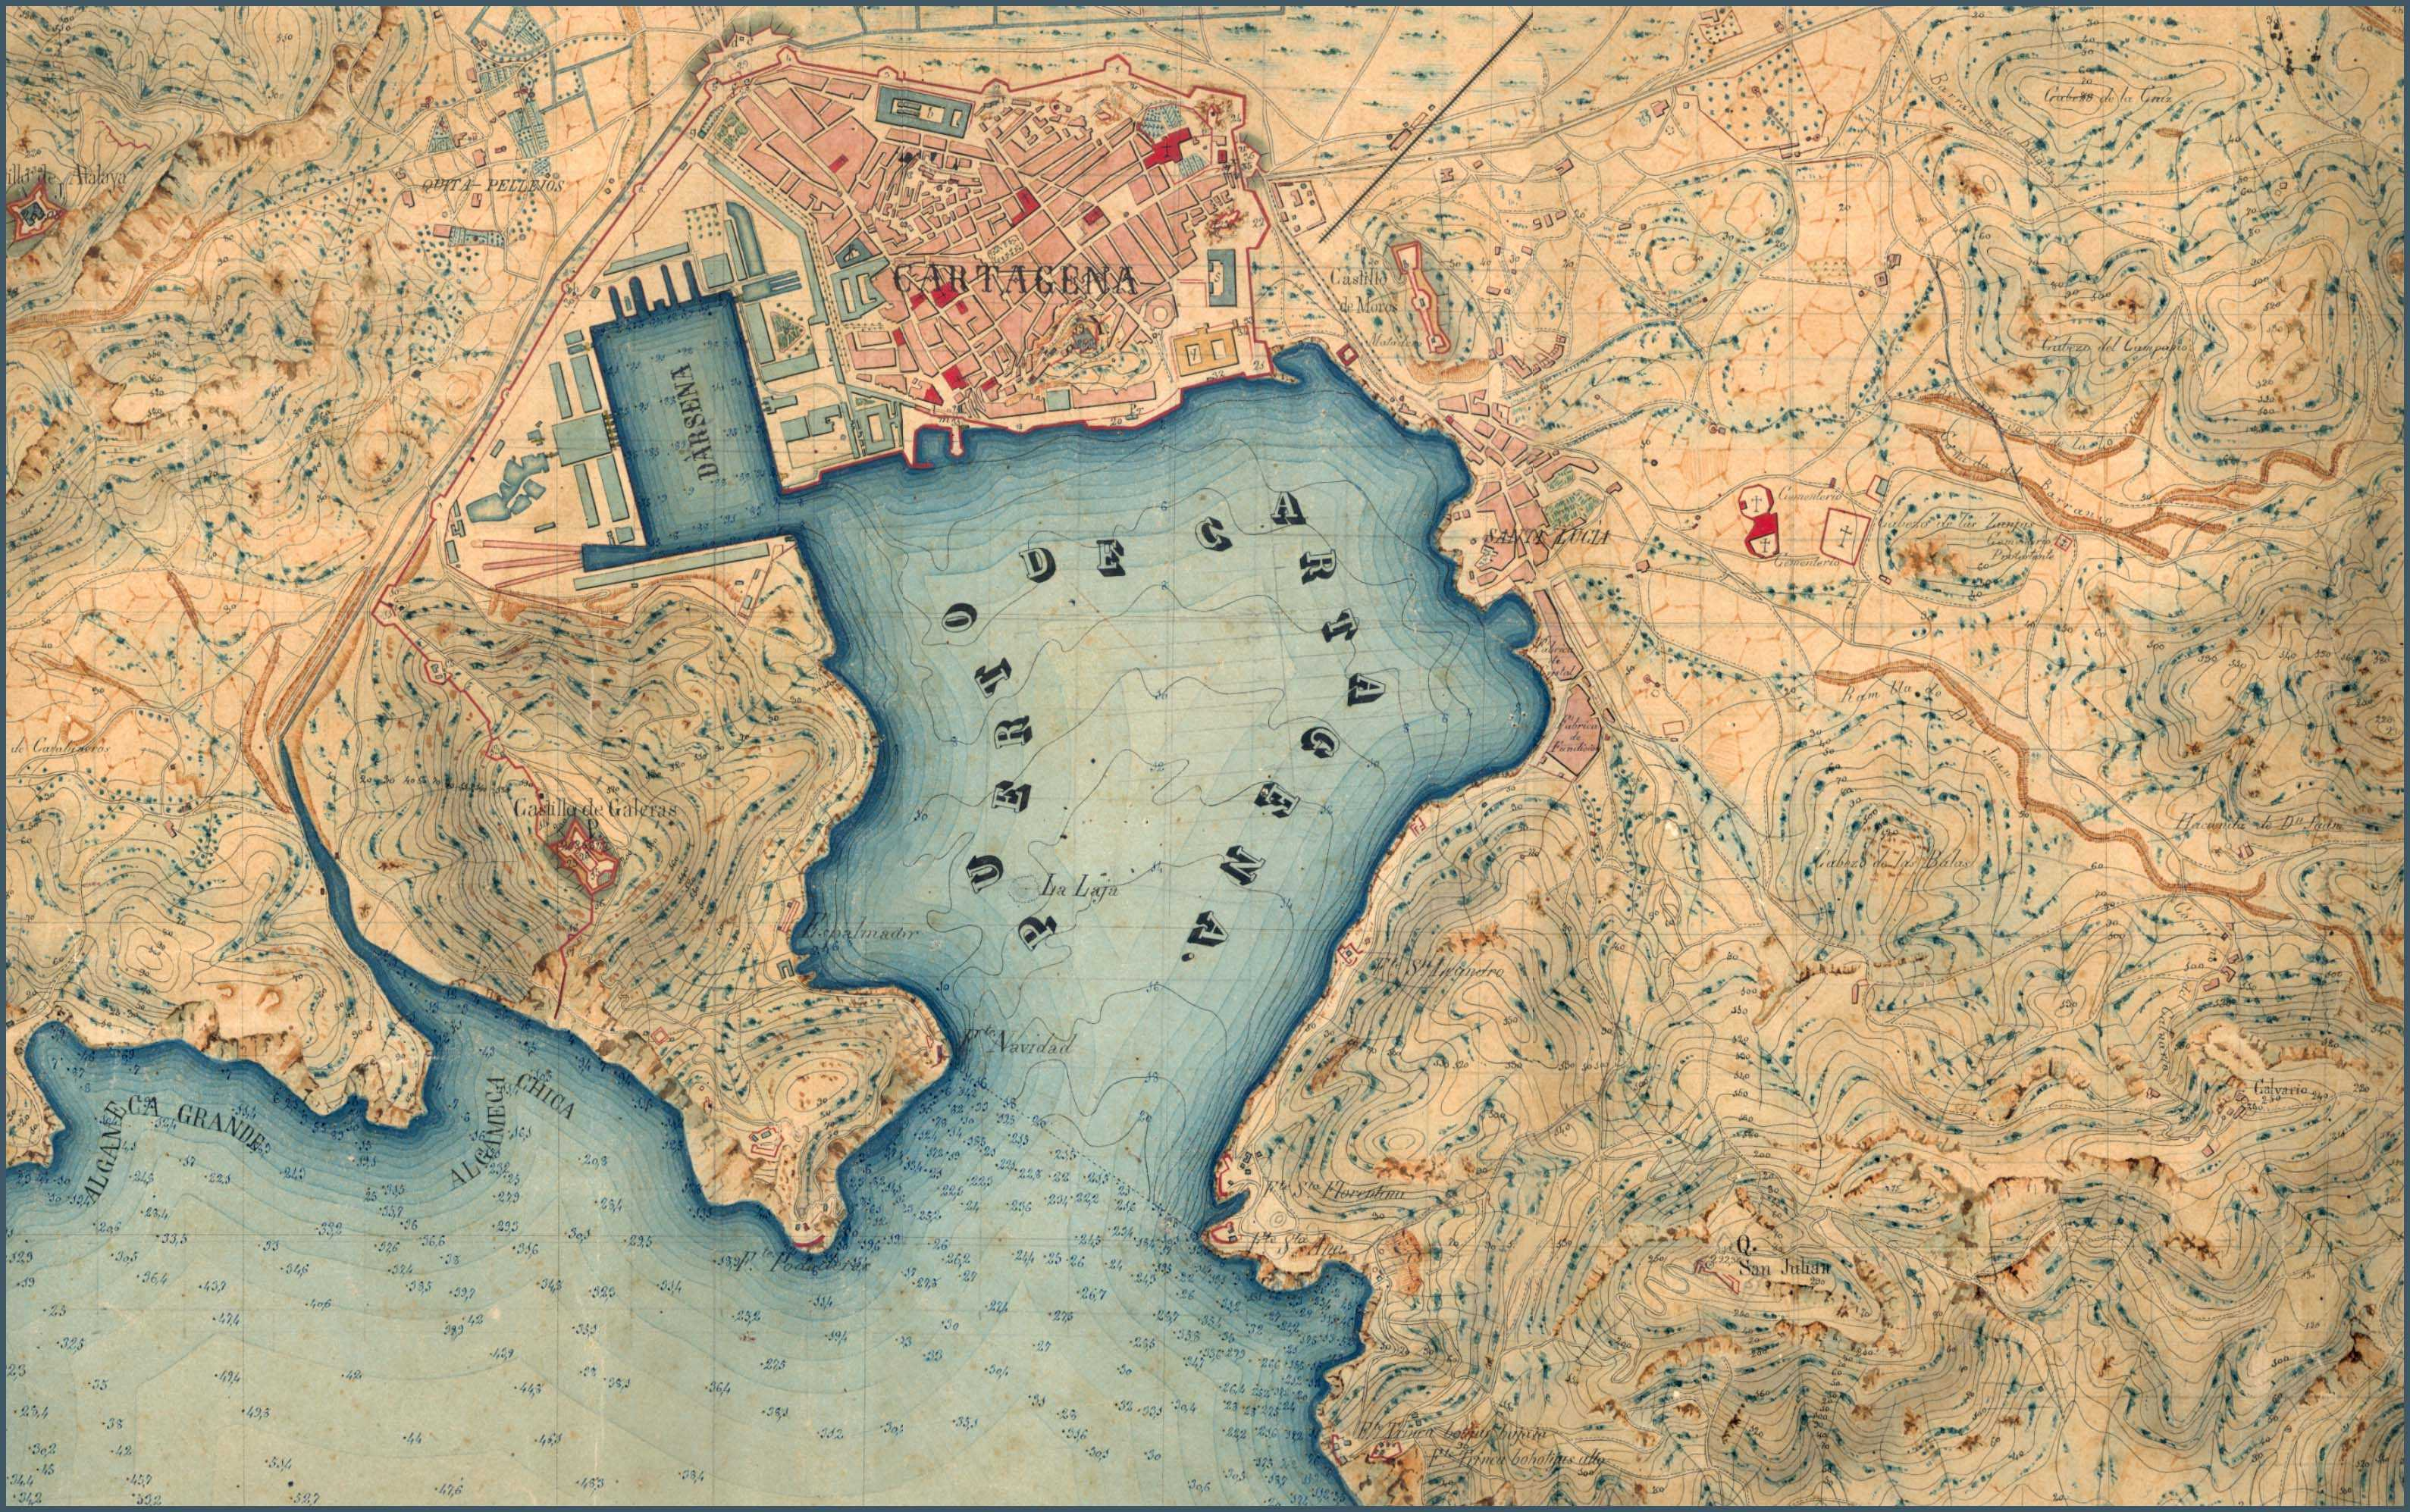 Map of the City of Cartagena and dockyard 1860